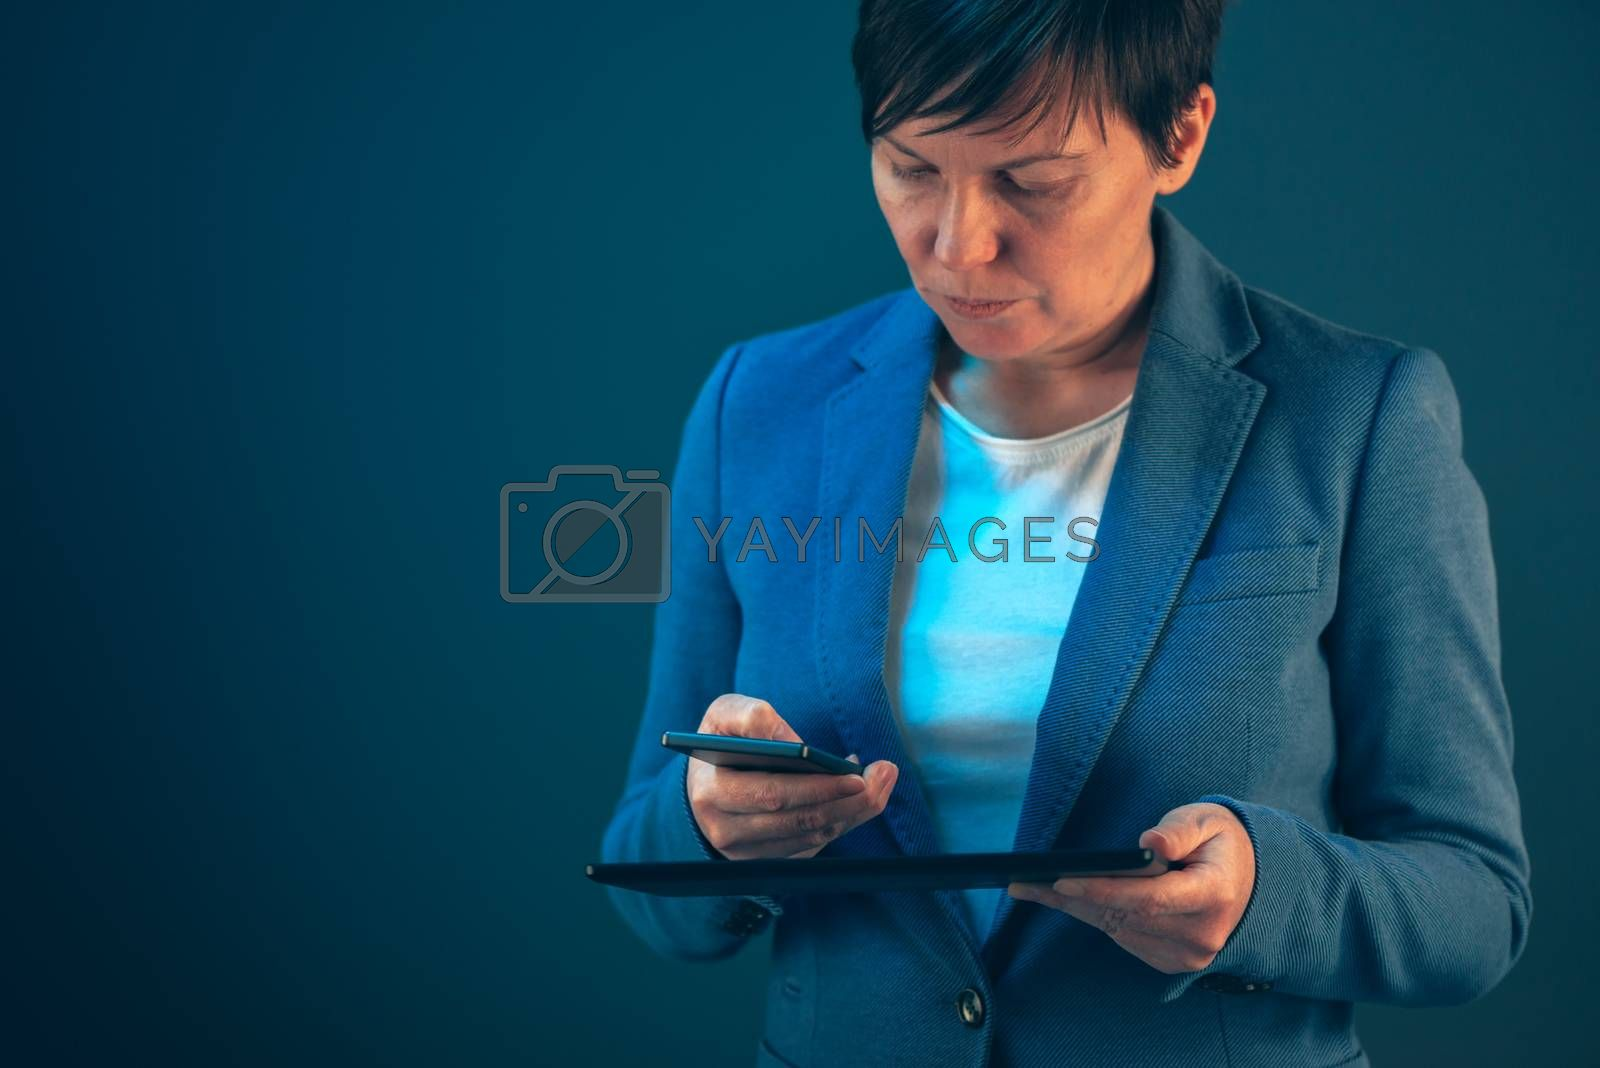 Smartphone and tablet data synchronization, businesswoman syncing files and documents on wireless electronic devices at business office